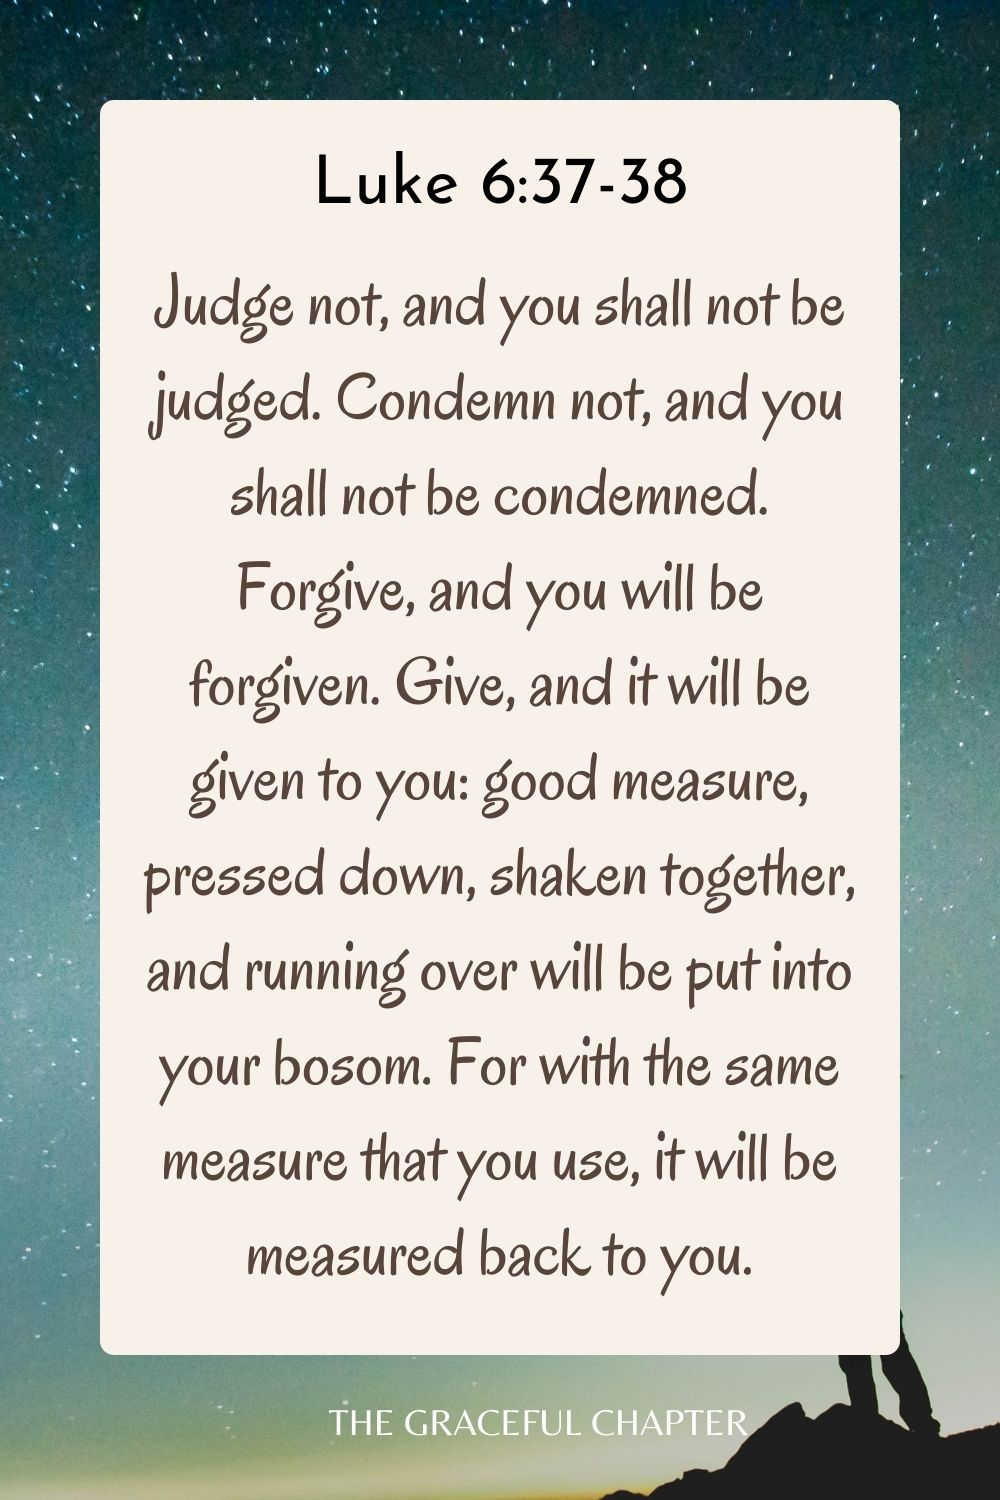 Judge not, and you shall not be judged. Condemn not, and you shall not be condemned. Forgive, and you will be forgiven. Give, and it will be given to you: good measure, pressed down, shaken together, and running over will be put into your bosom. For with the same measure that you use, it will be measured back to you. Luke 6:37-38